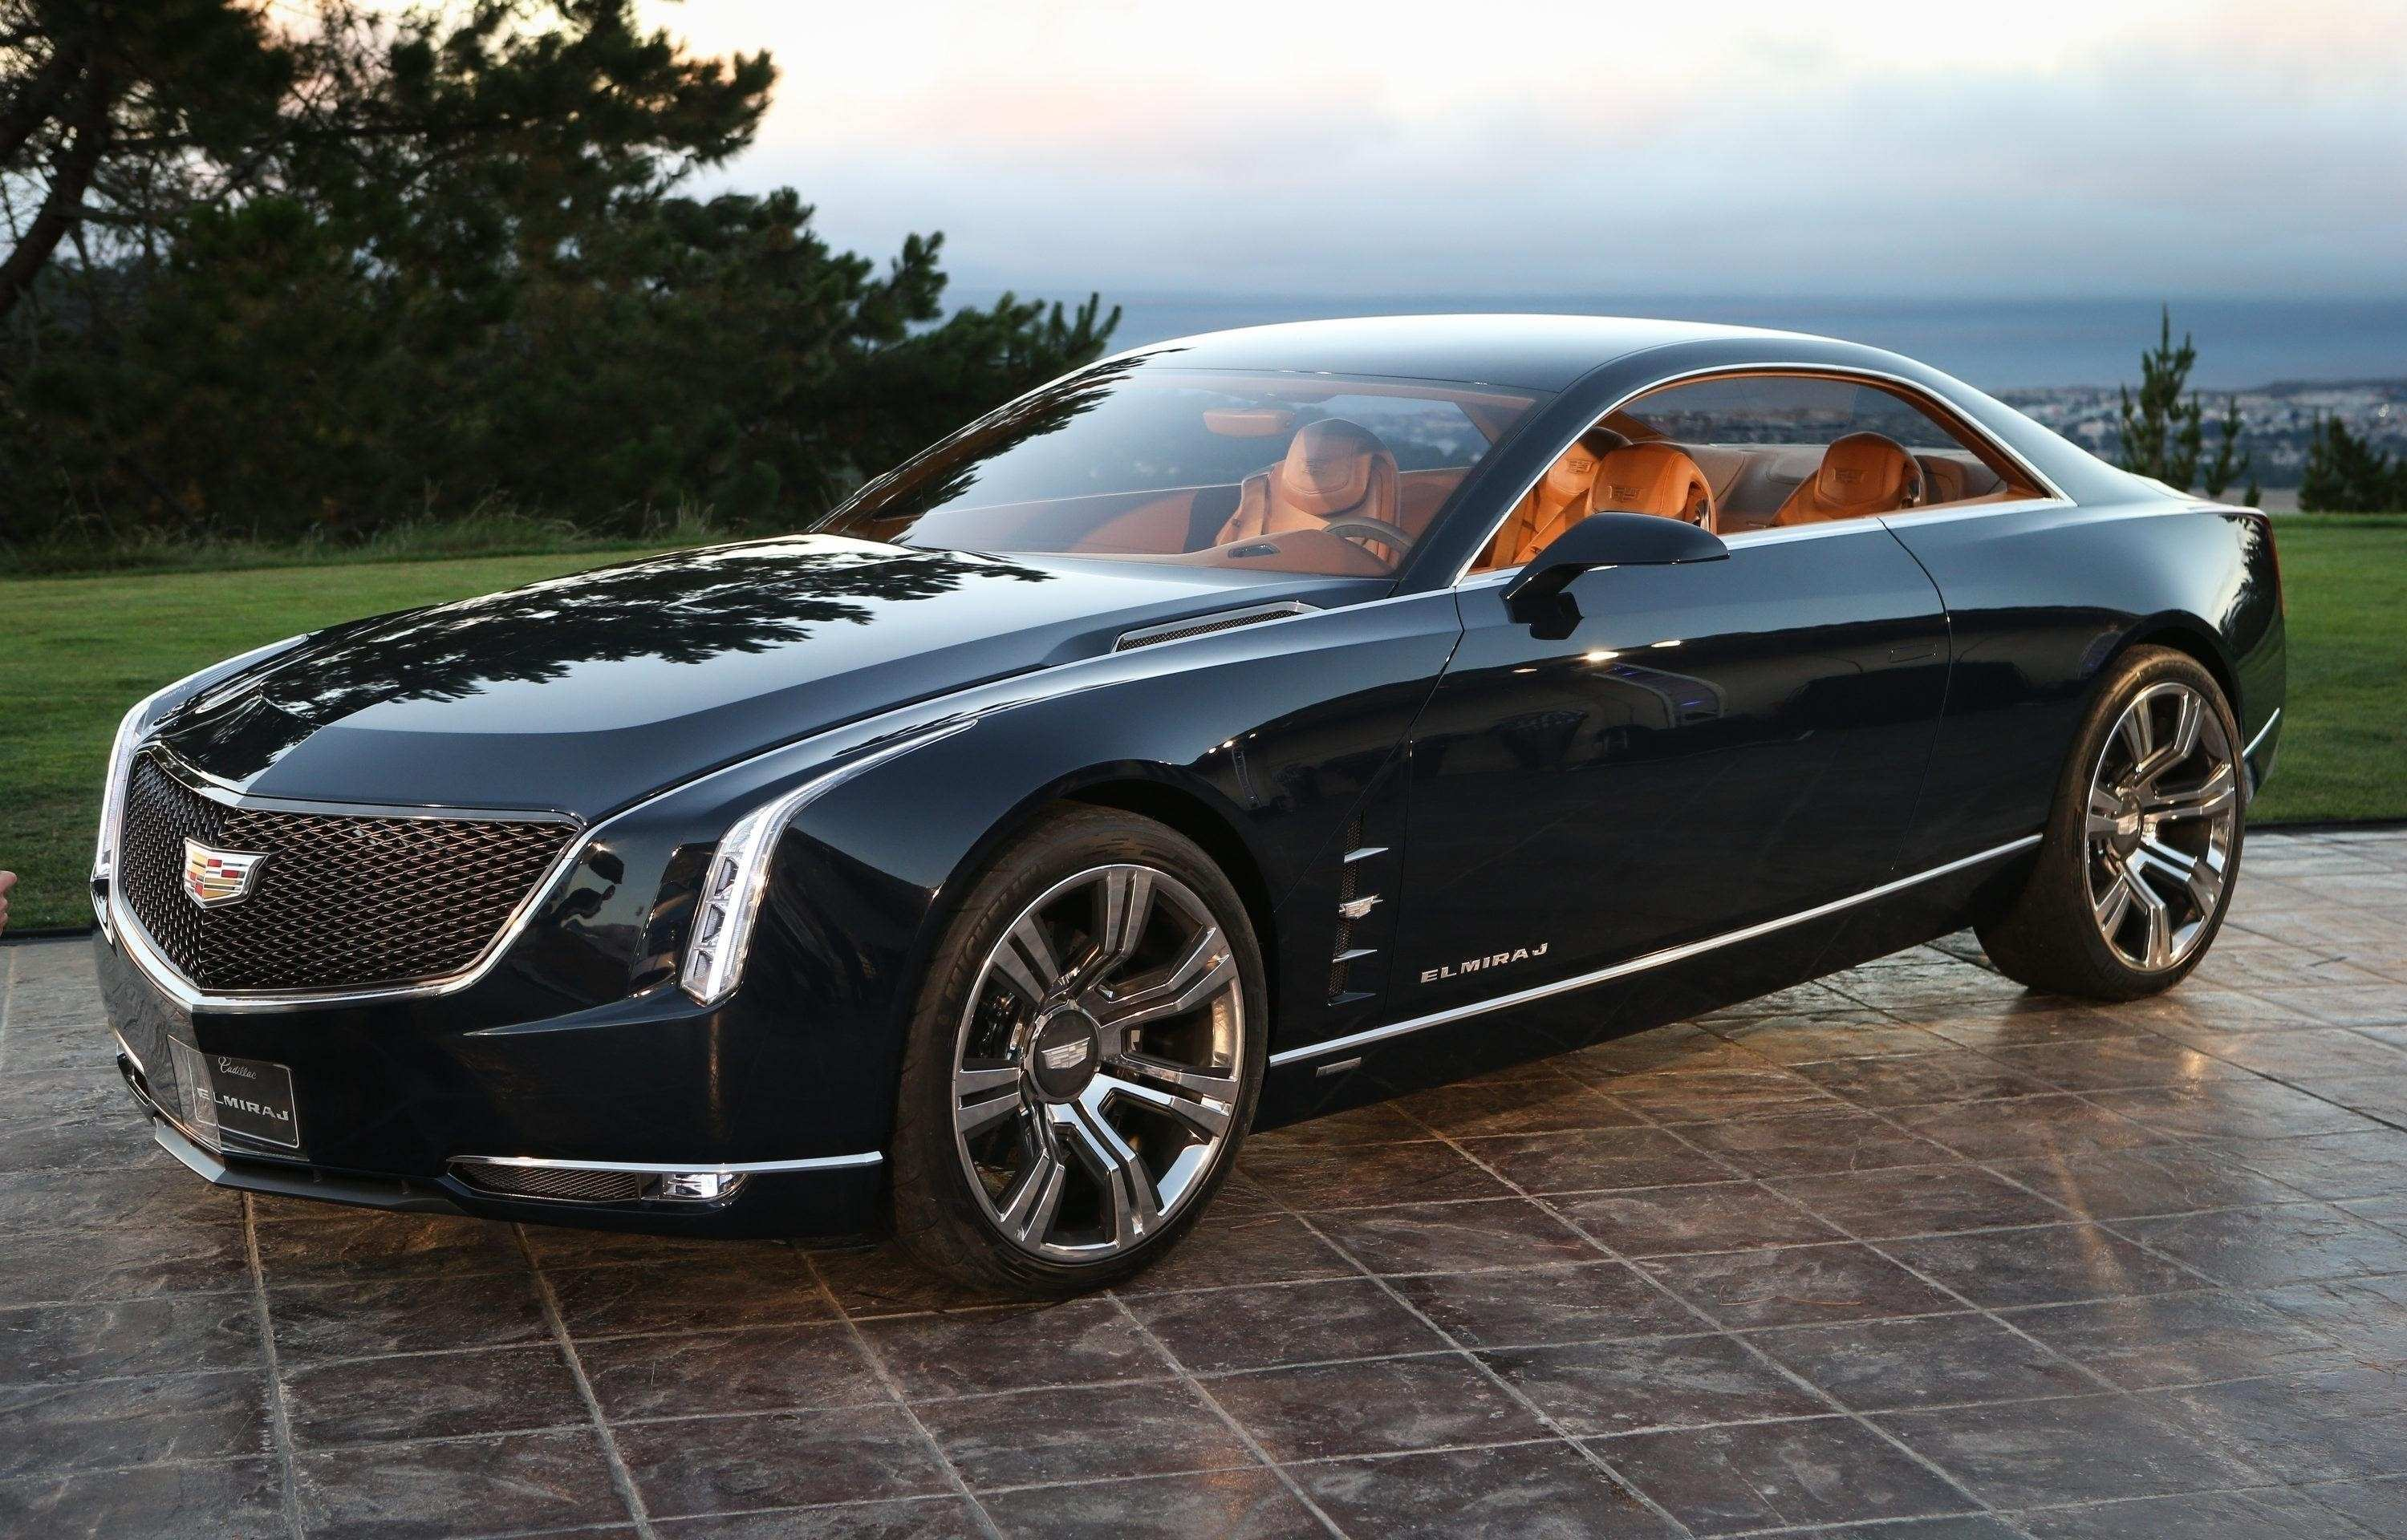 36 Gallery of 2019 Cadillac Dts Overview Release with 2019 Cadillac Dts Overview